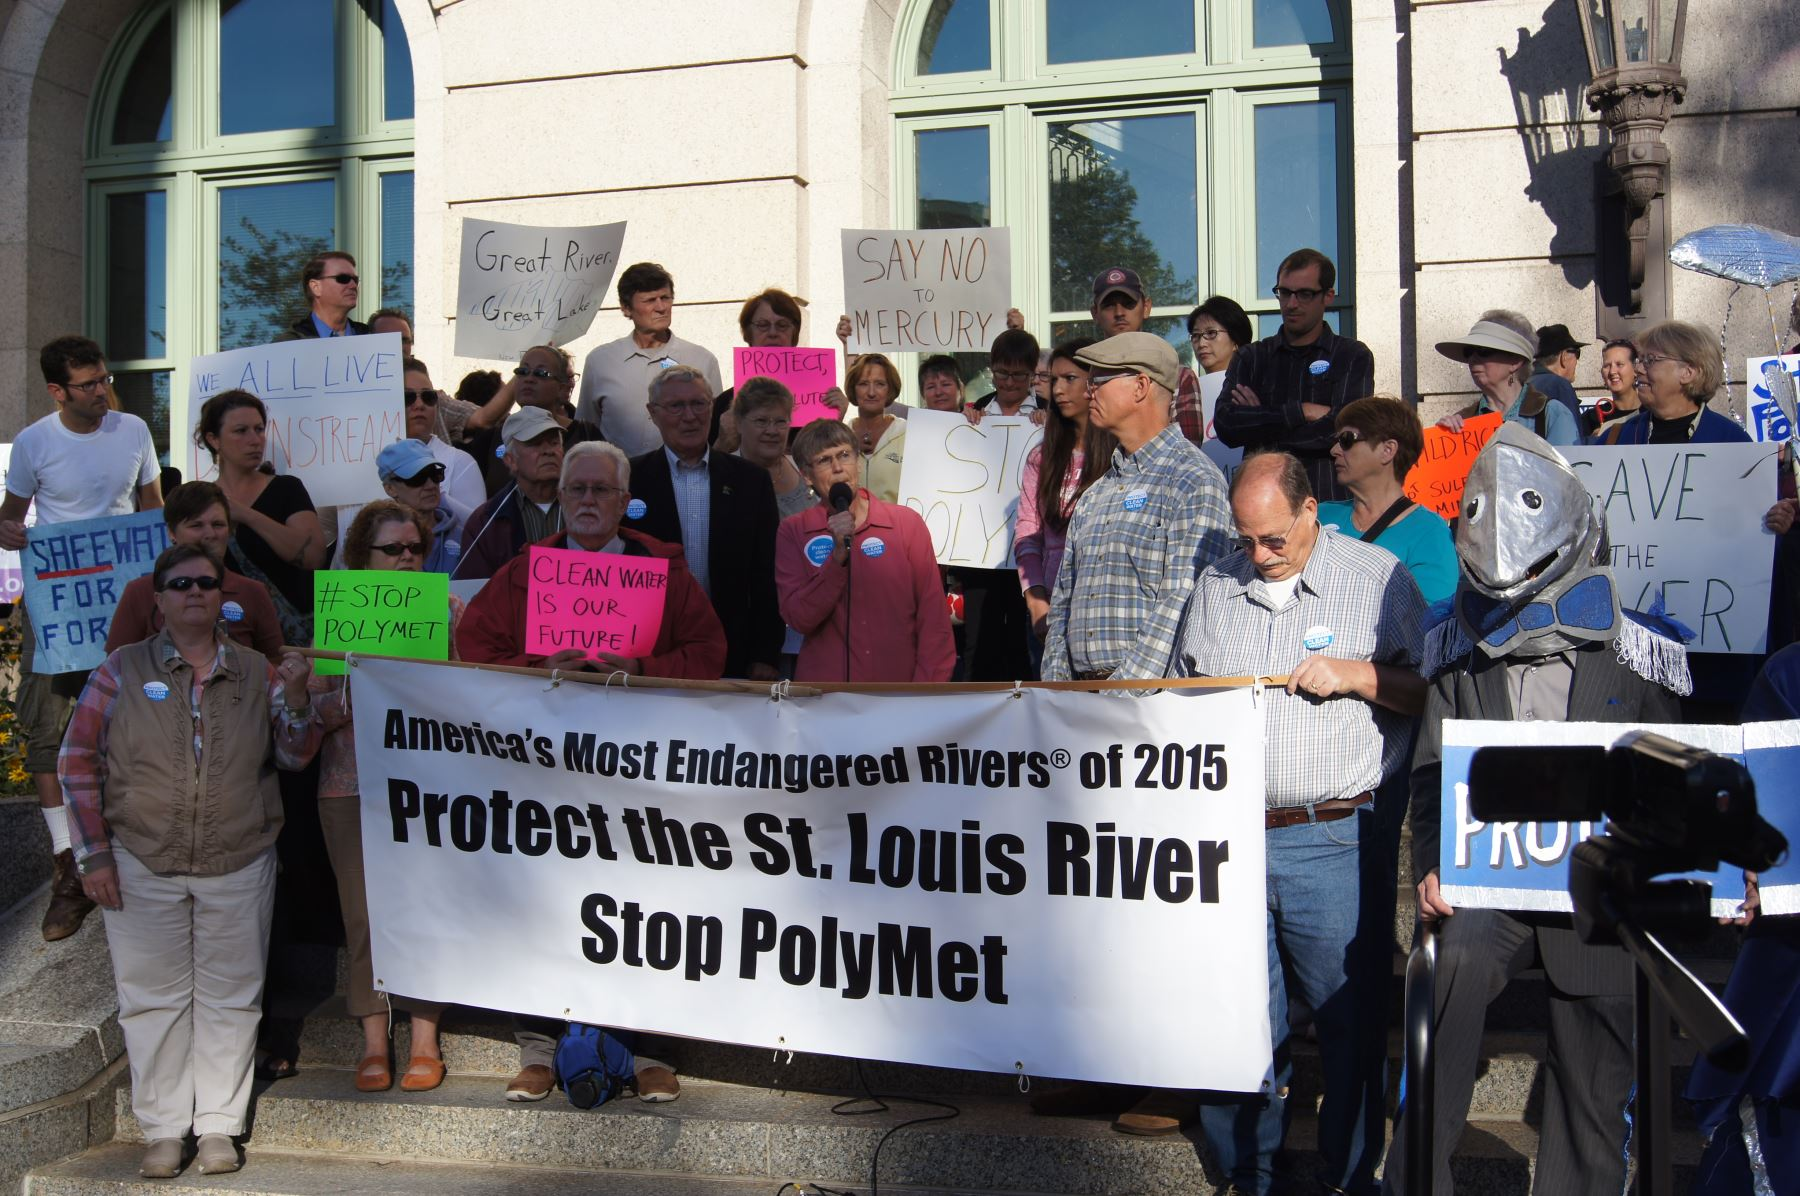 Photo from the Rally for the St Louis River, Sept 22, 2015